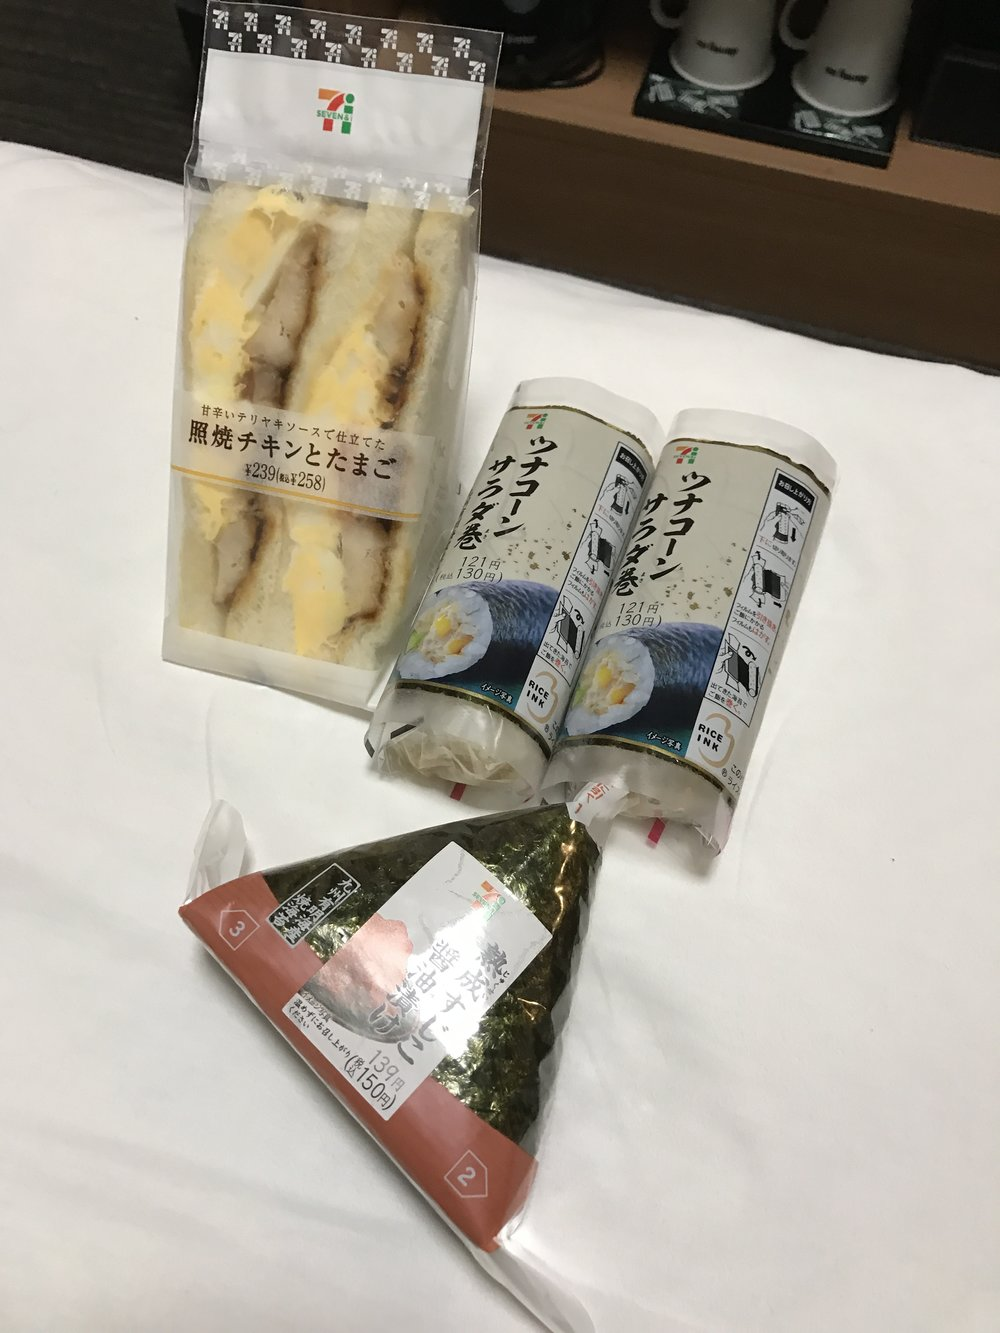 7-11 or Lawson has these delicious rolls and ikura onigiri!